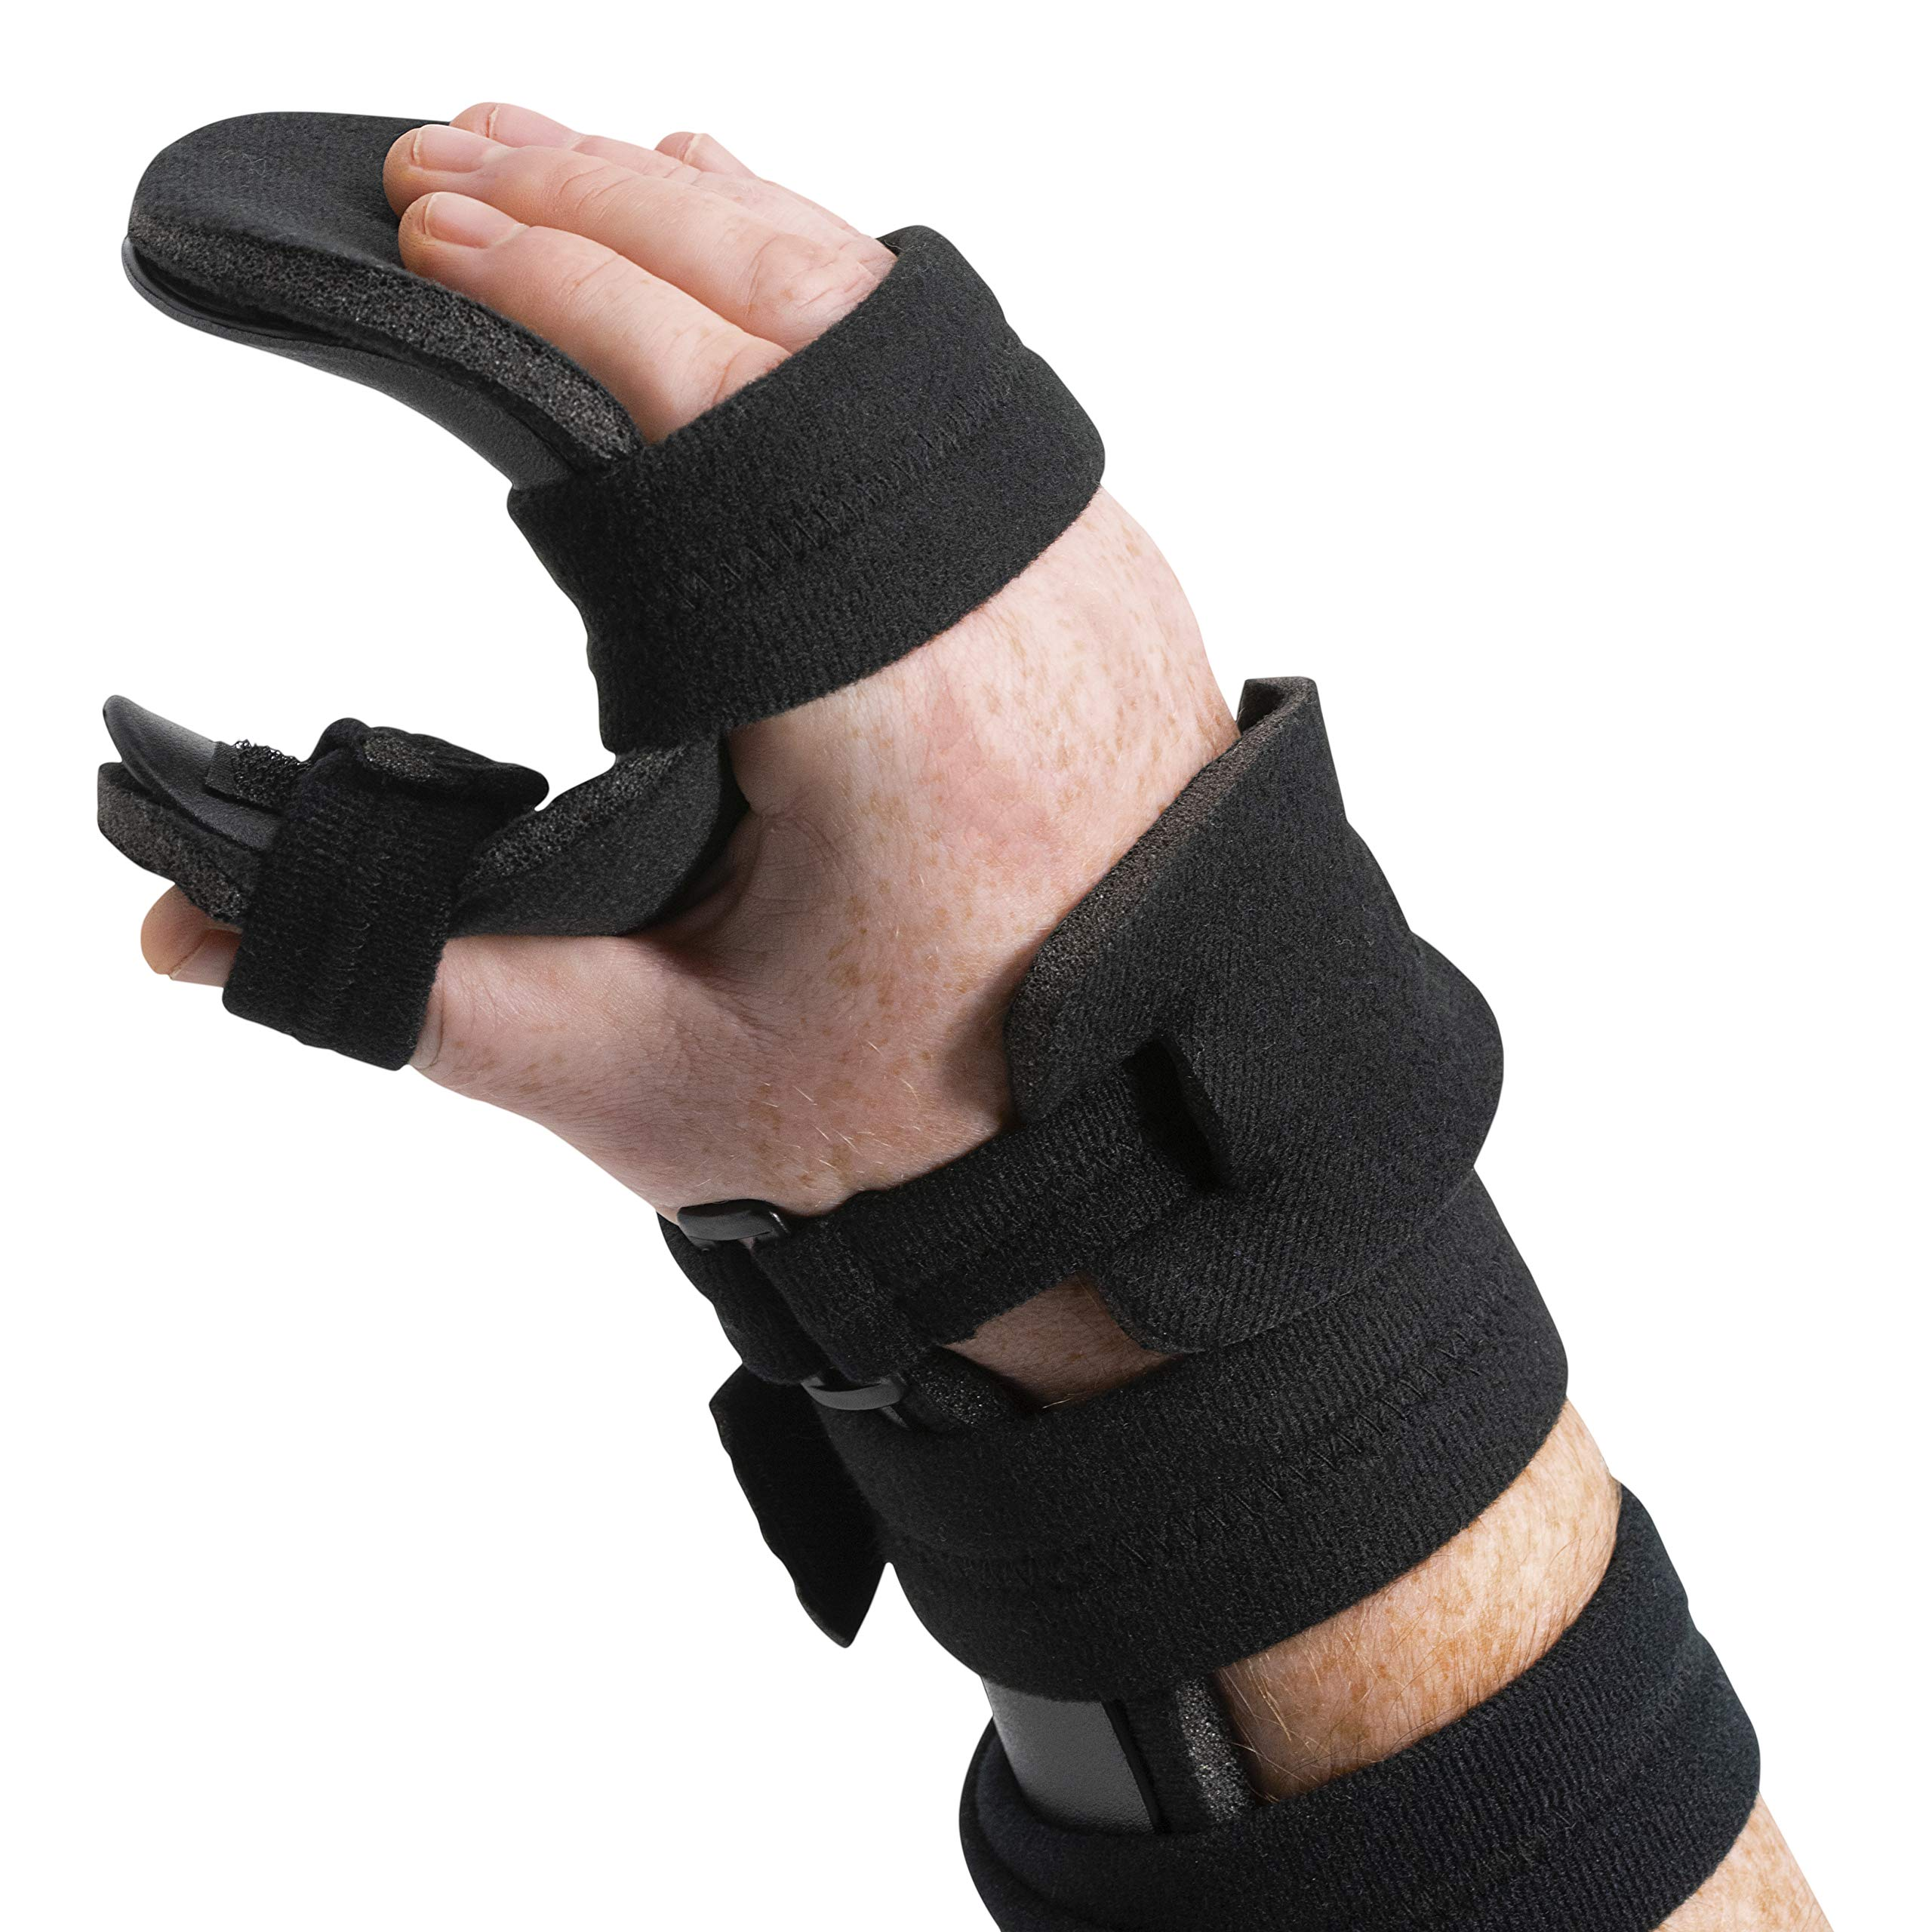 Stroke Hand Splint- Soft Resting Hand Splint for Flexion Contractures, Comfortably Stretch and Rest Hands for Long Term Ease with Functional Hand Splint, an American Heritage Industries (Right, Small)